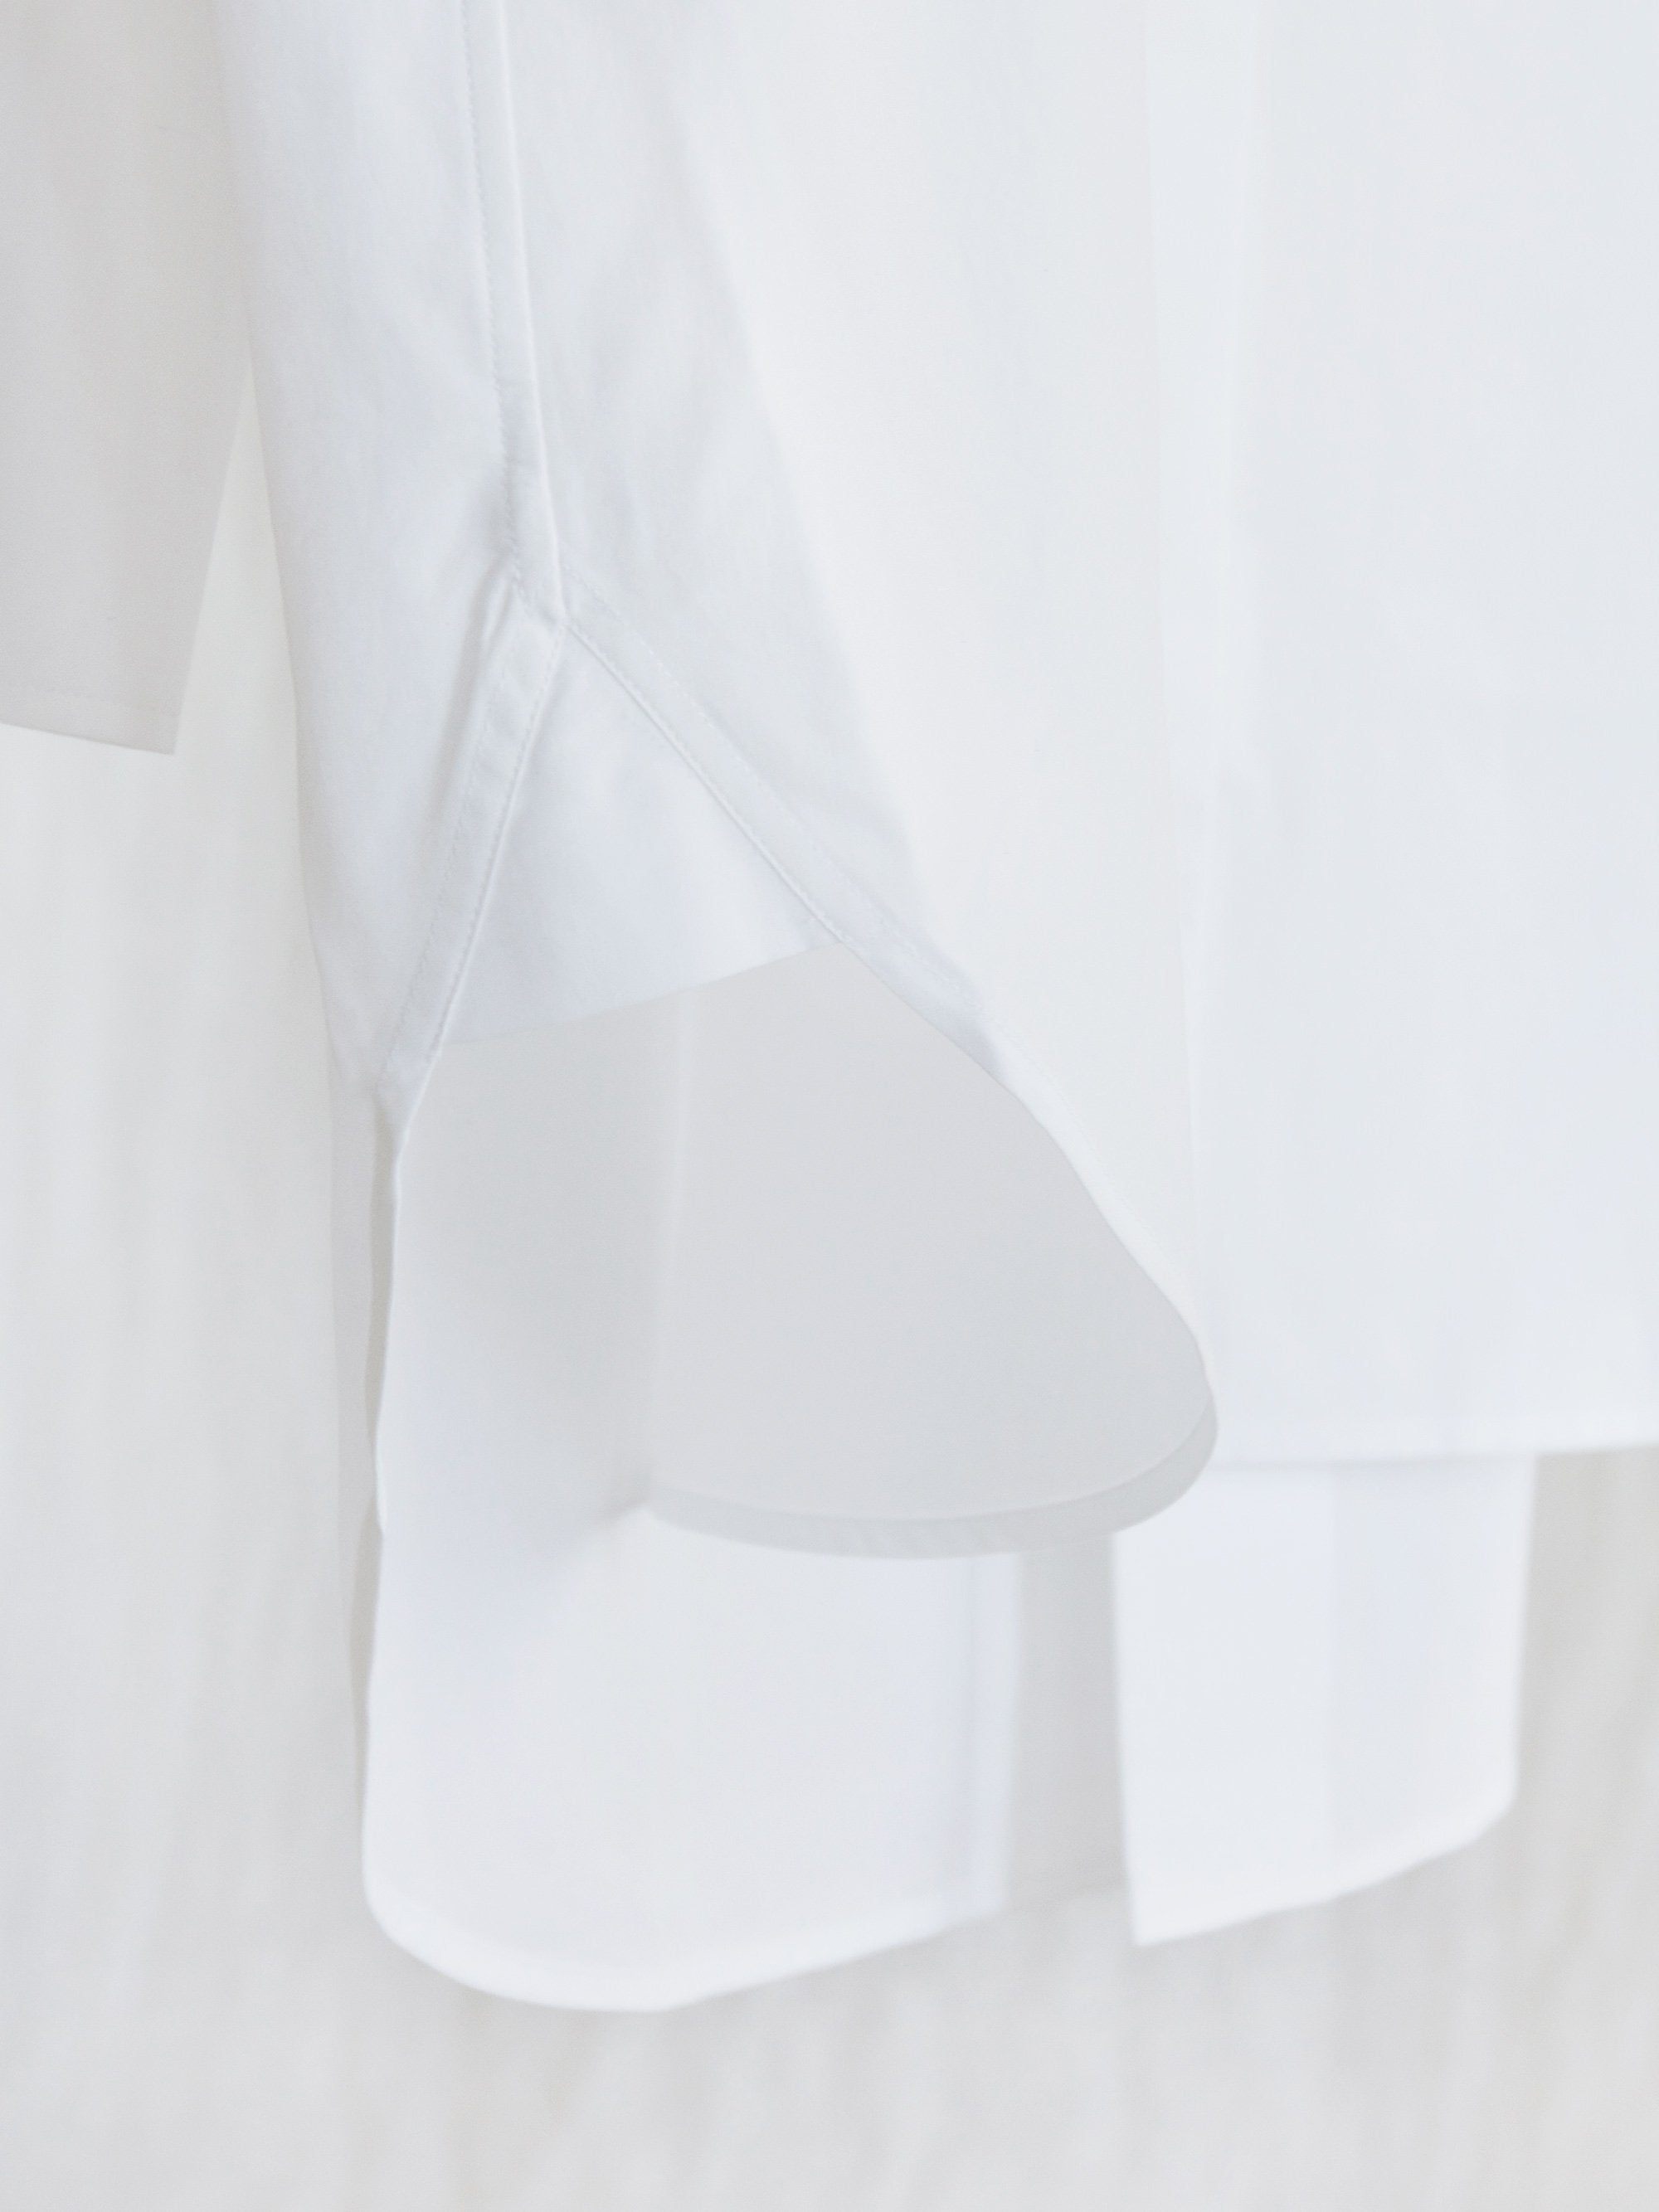 Namu Shop - Studio Nicholson Double Split Shirt - White